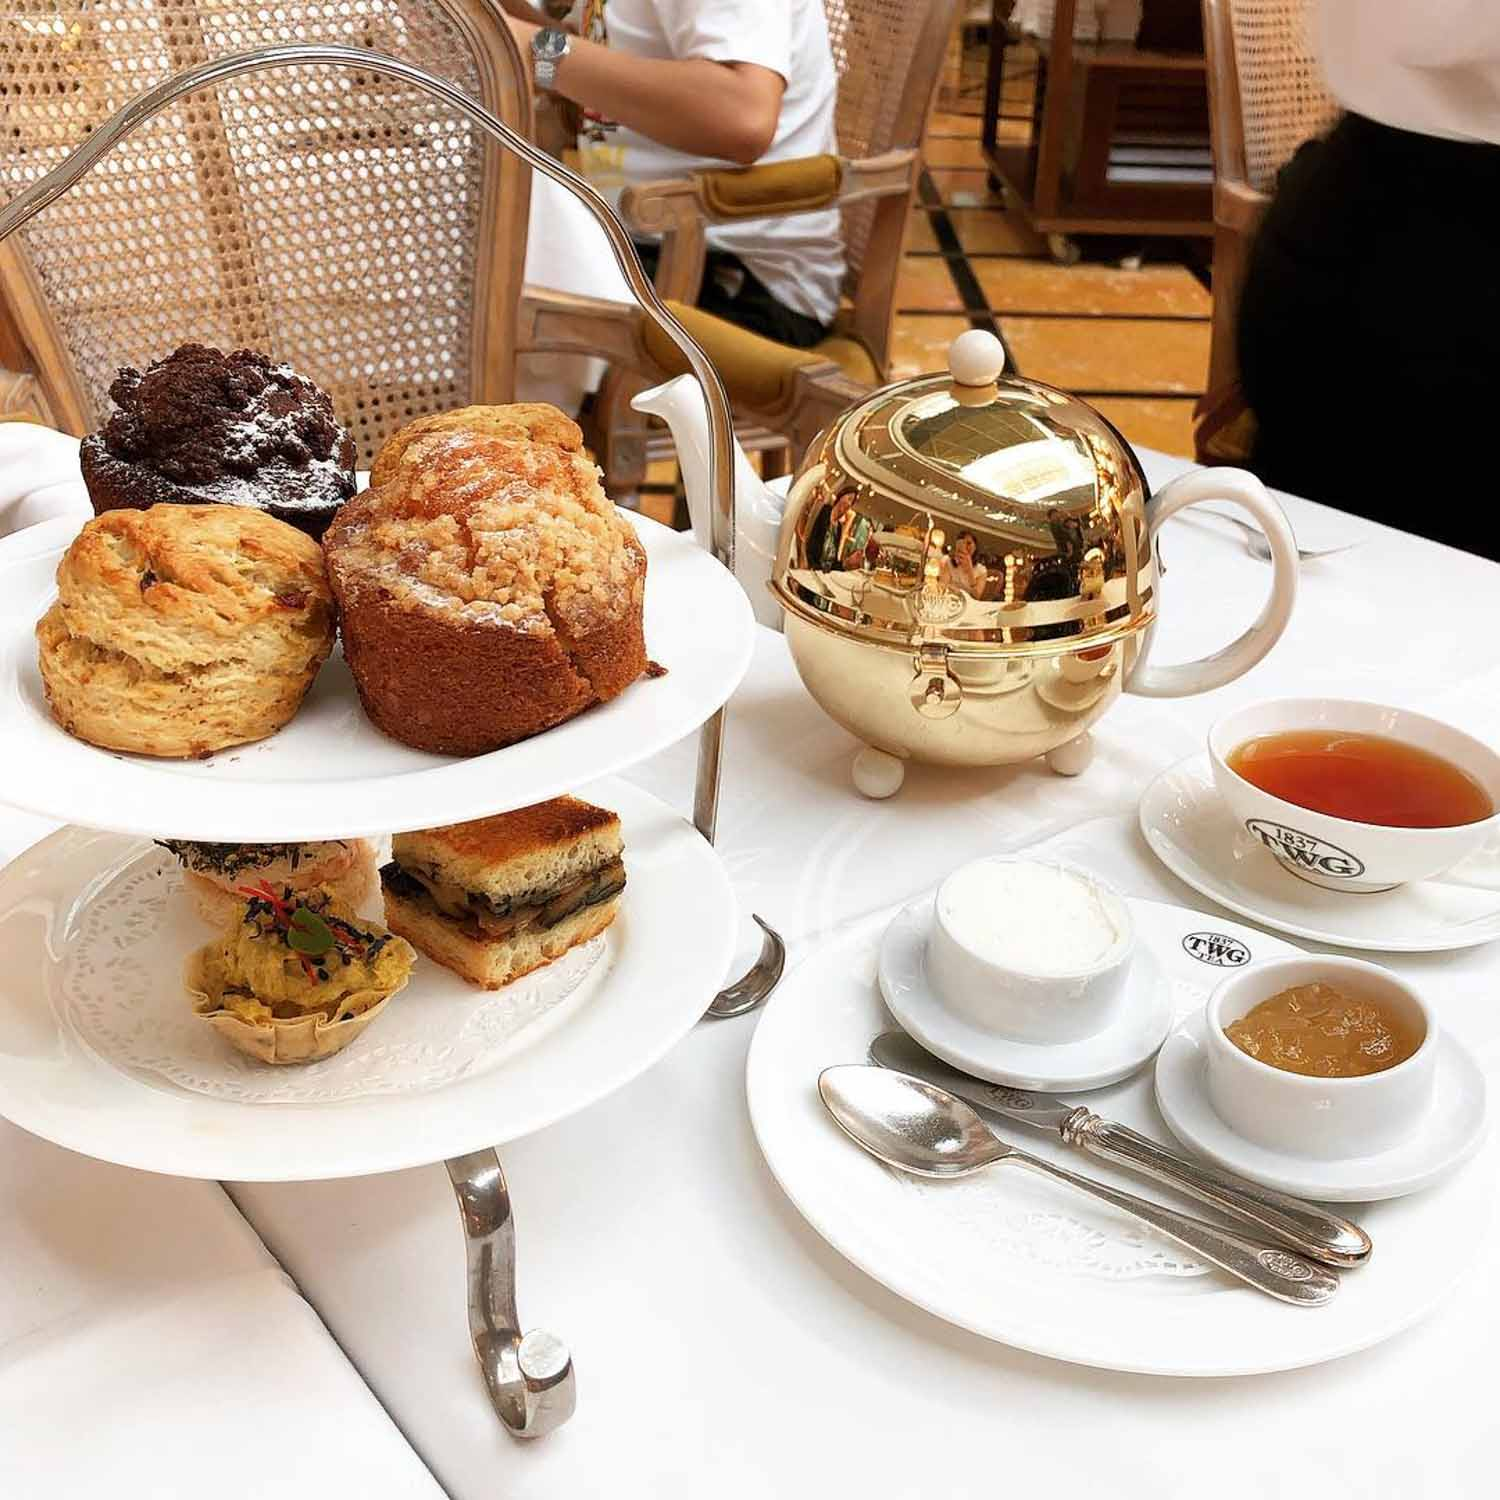 Affordable High Tea - TWG Tea